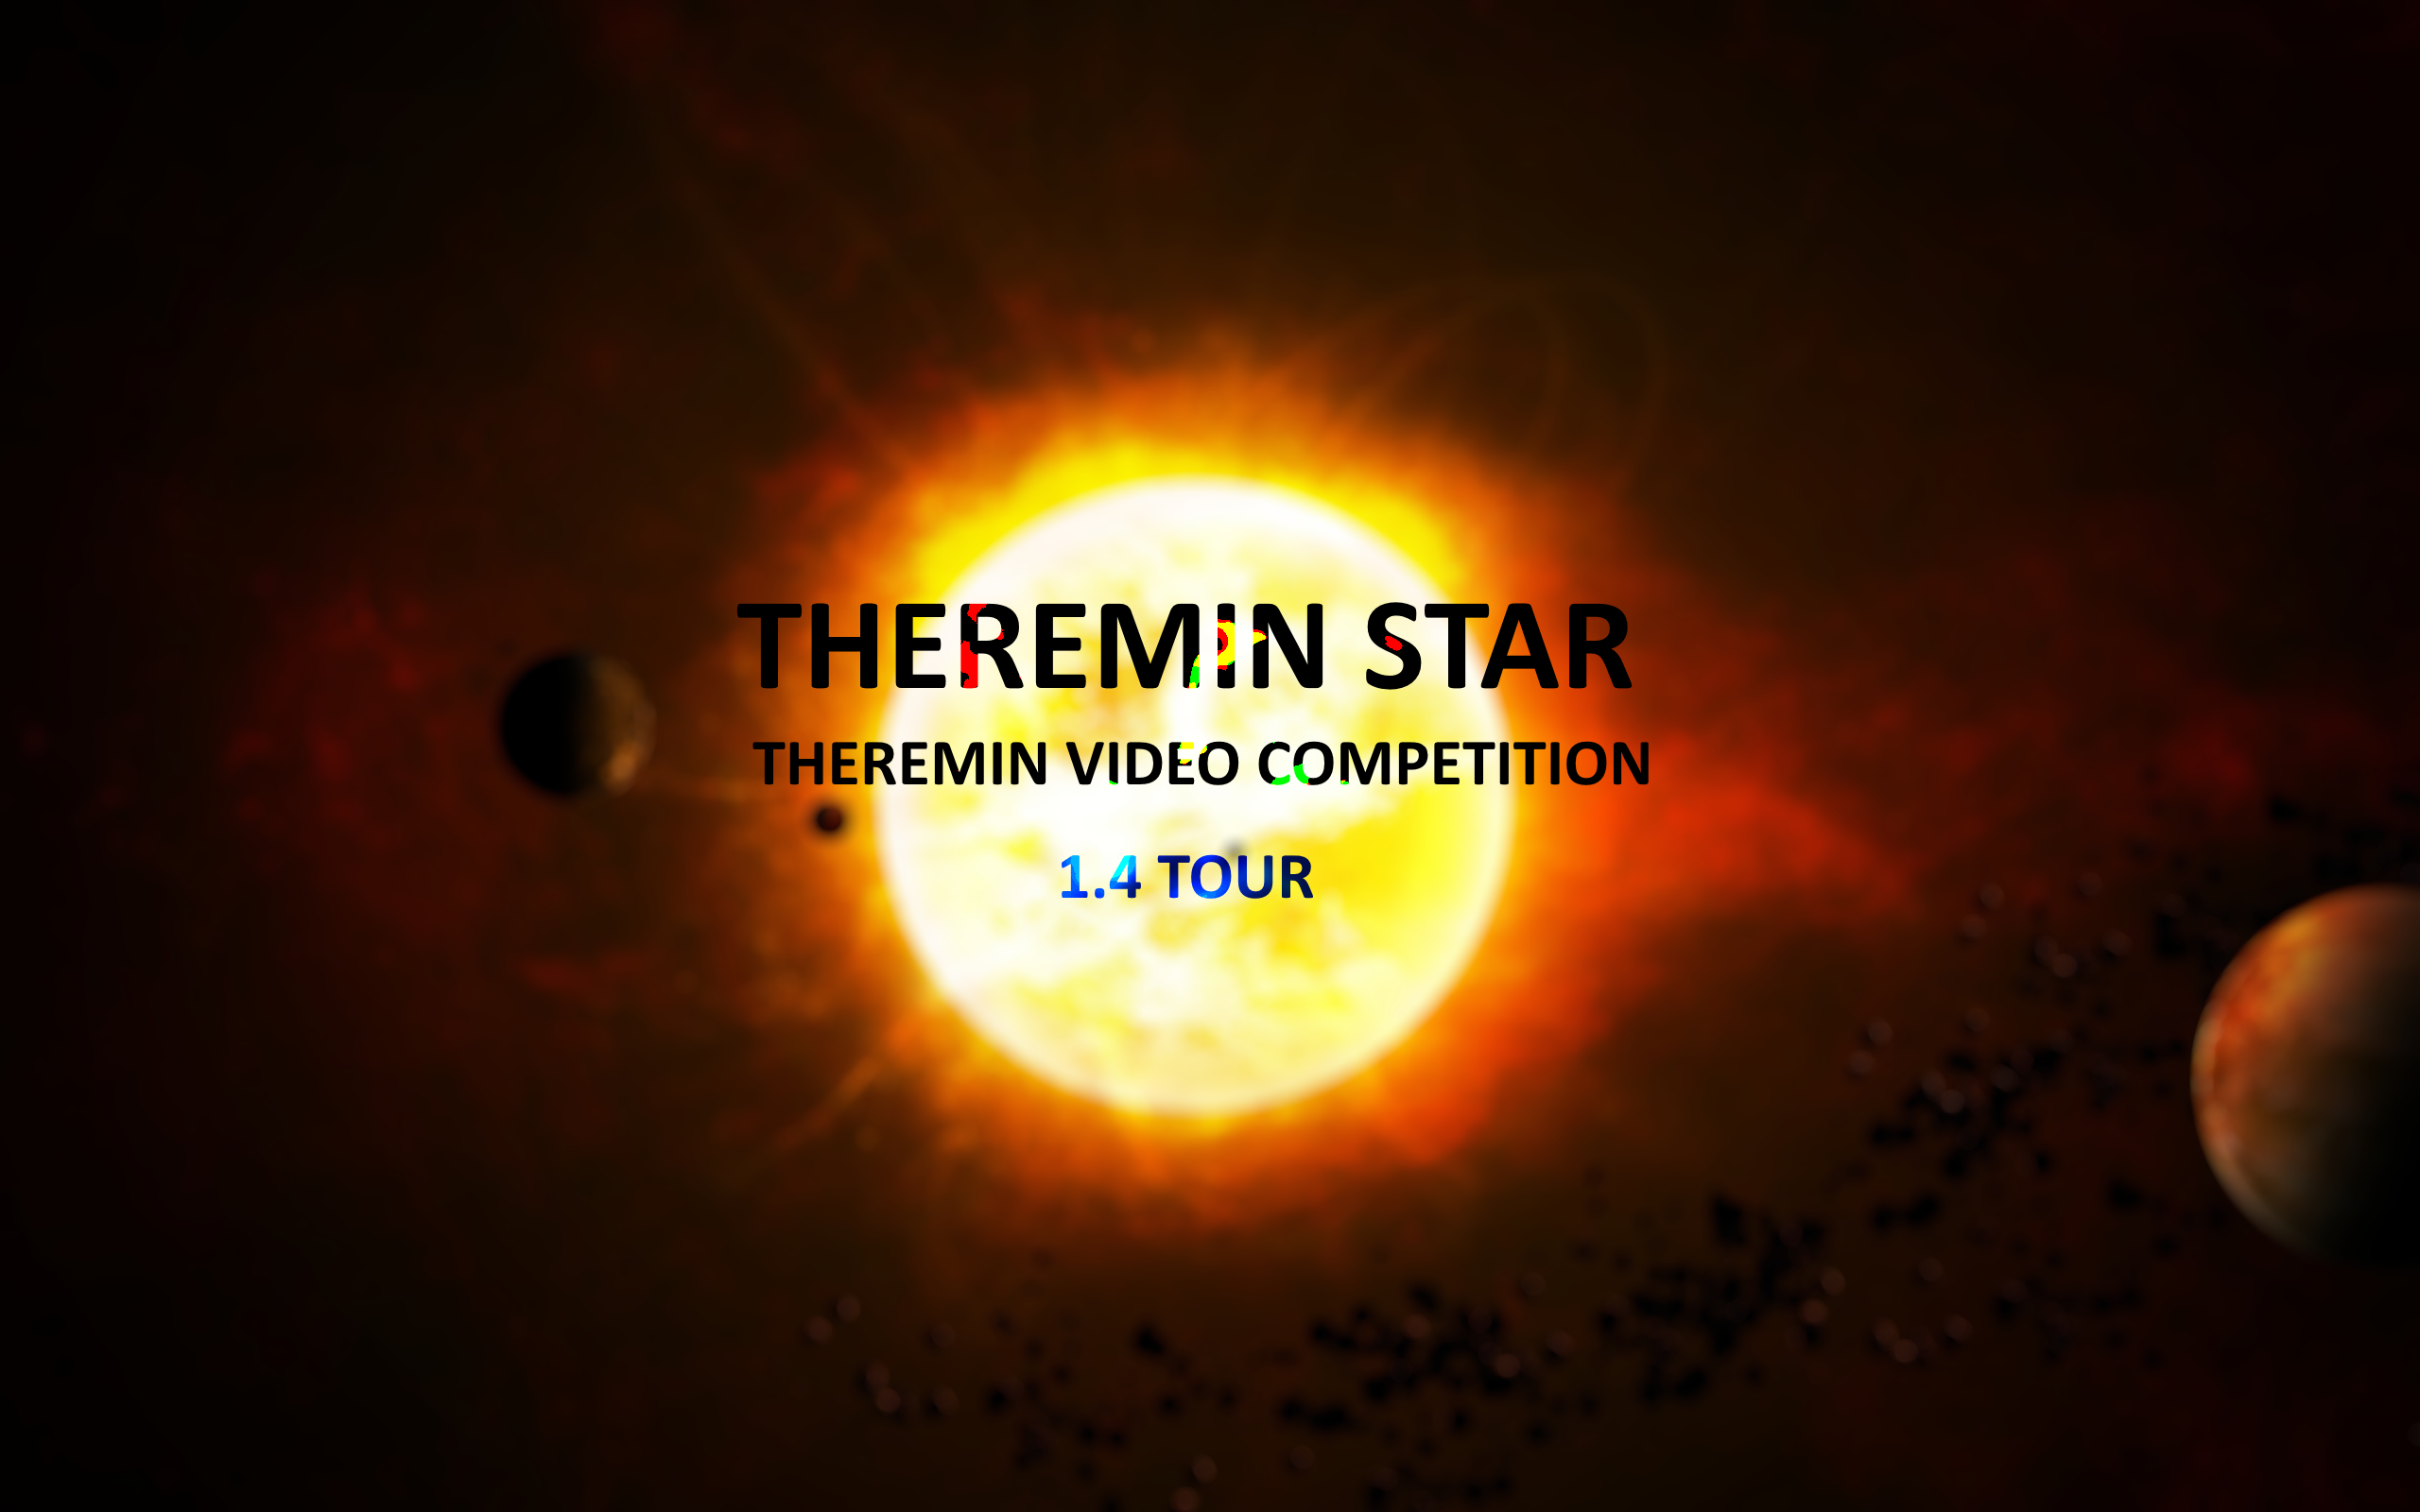 THEREMIN STAR СOMPETITION - 1.4 TOUR